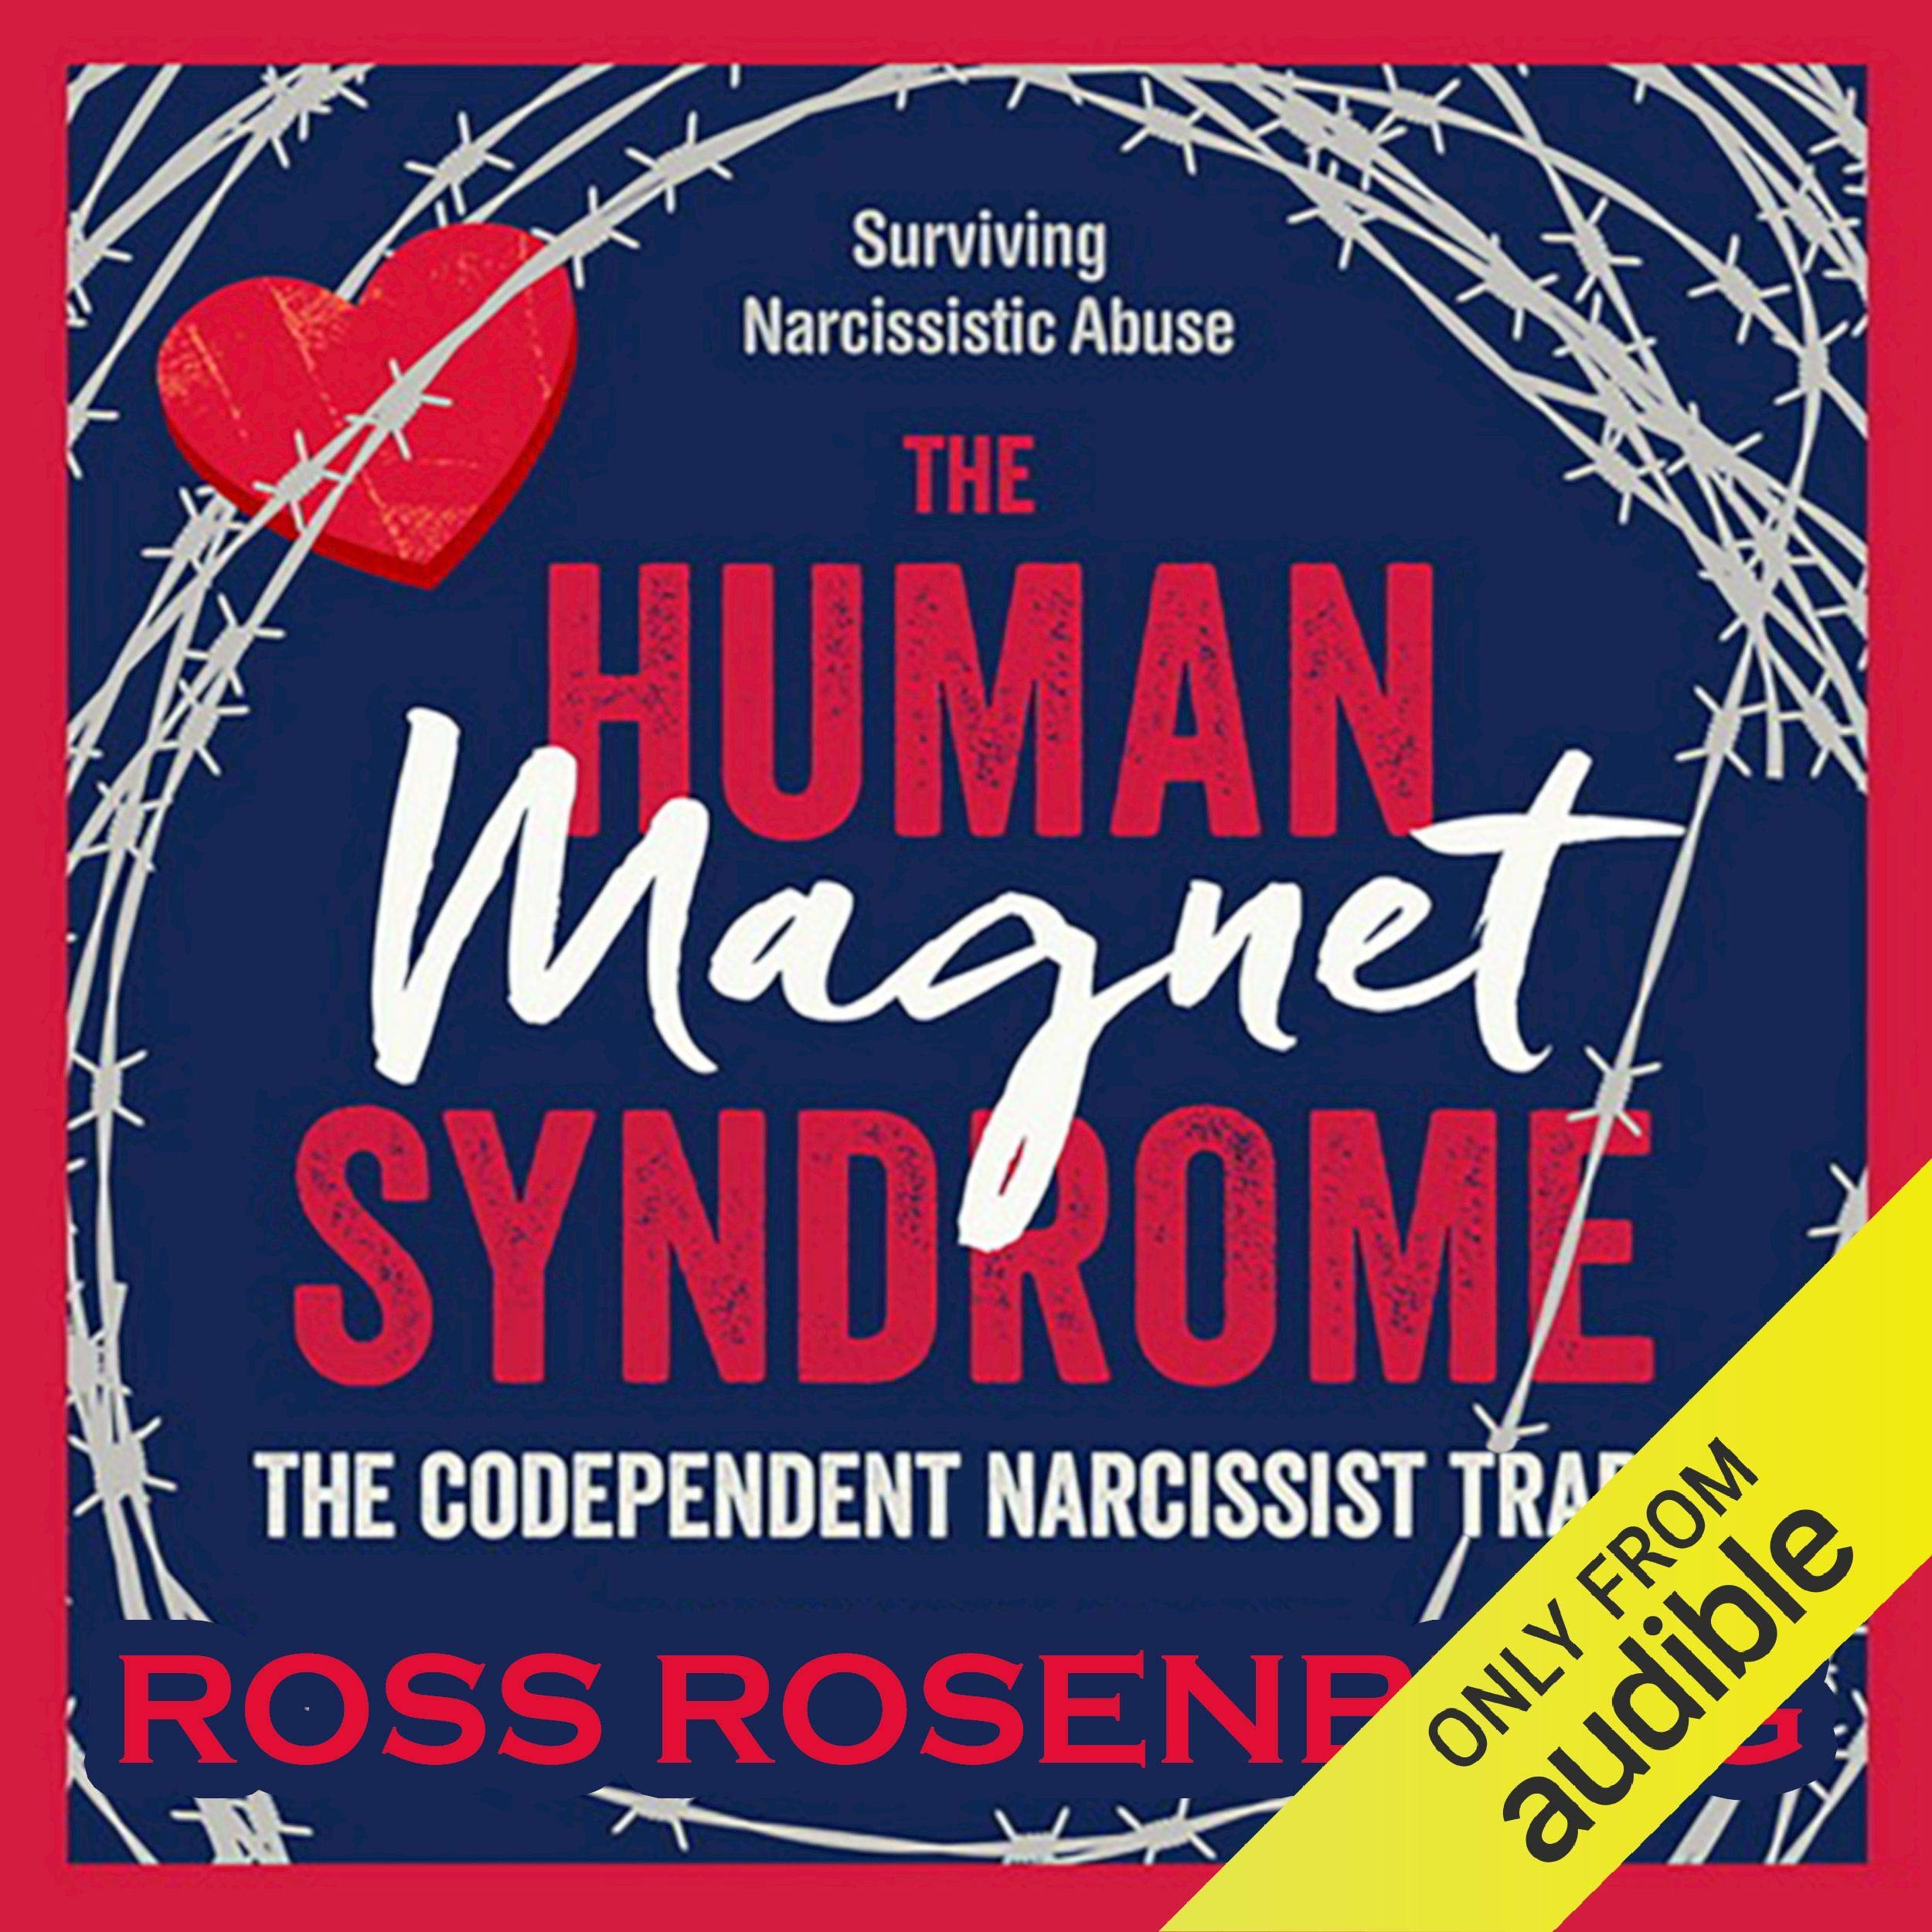 The Human Magnet Syndrome  The Codependent Narcissist Trap